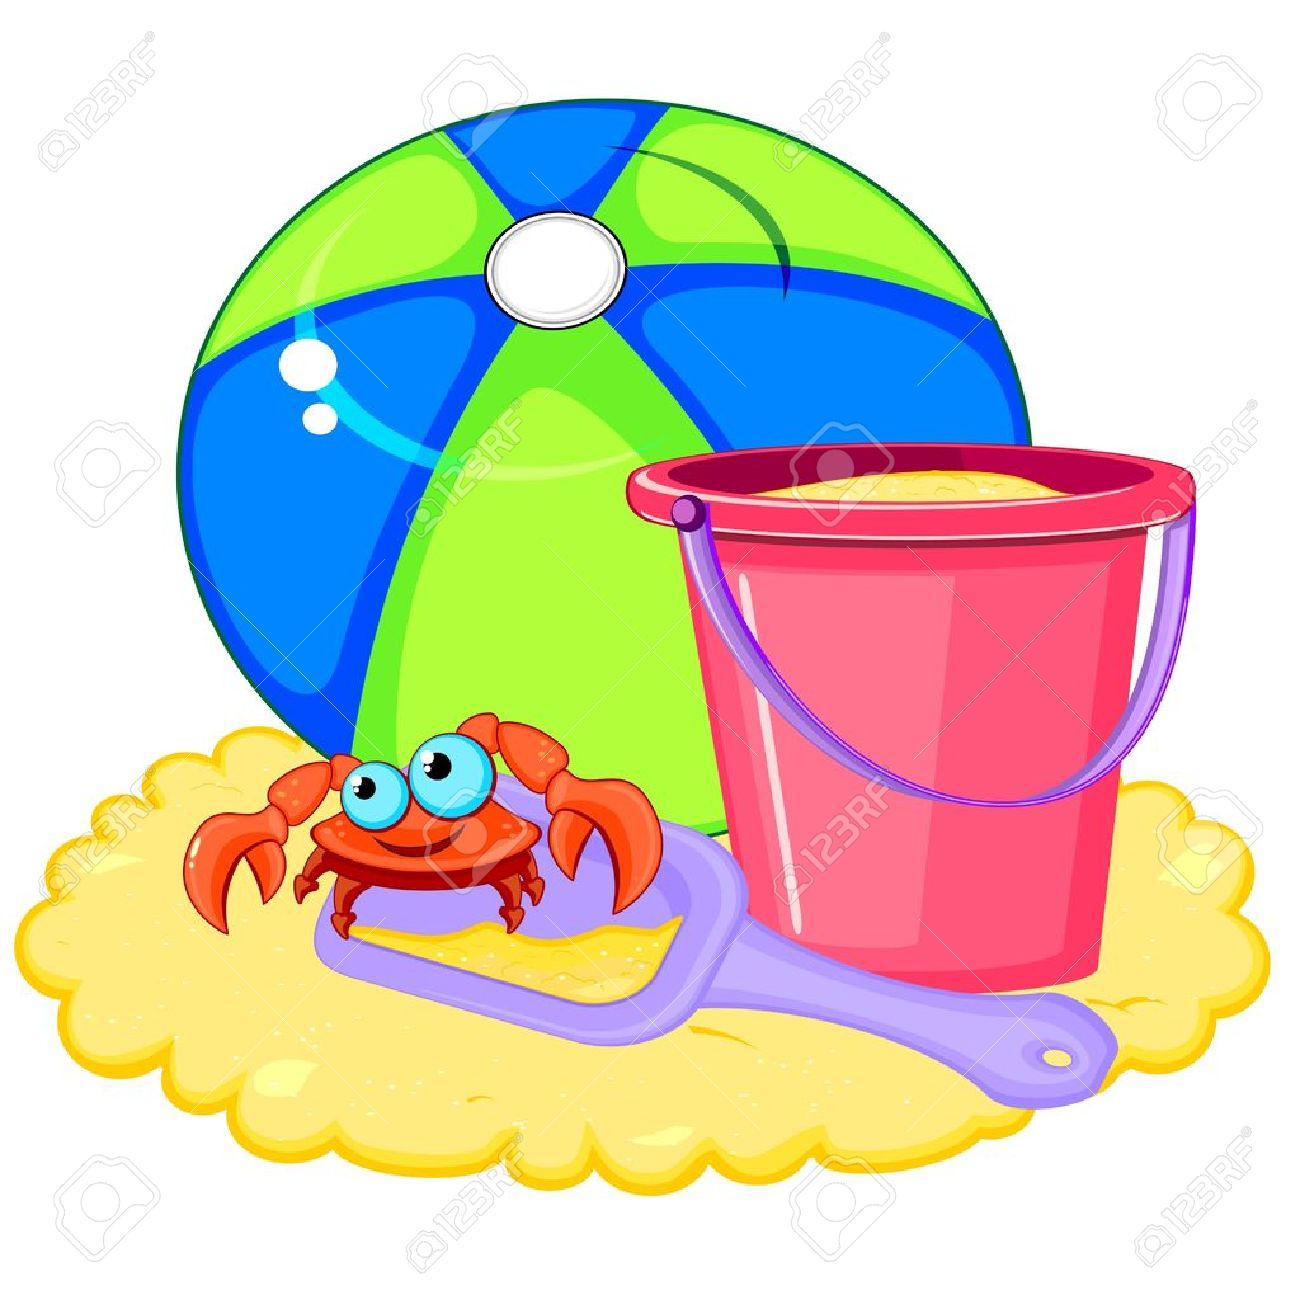 1300x1300 Sand Toys Clipart Amp Sand Toys Clip Art Images